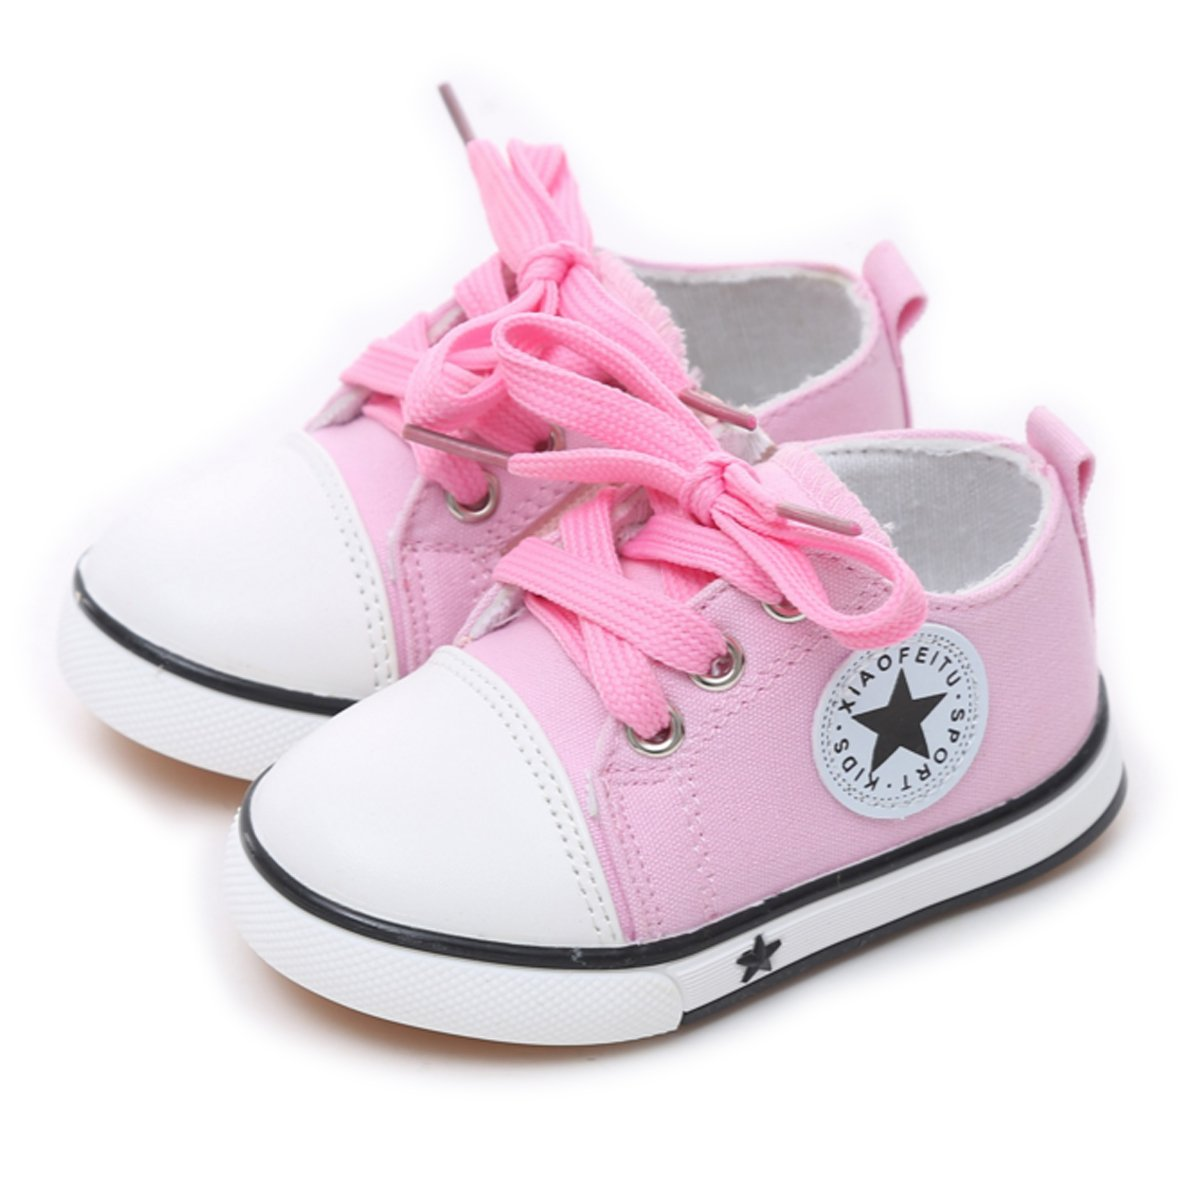 Tutoo Unisex Baby Boys Girls Shoes Kids Canvas Toddler Child Soft Sole Fashion Sneakers … (5 M U.S Toddler, A-Pink)